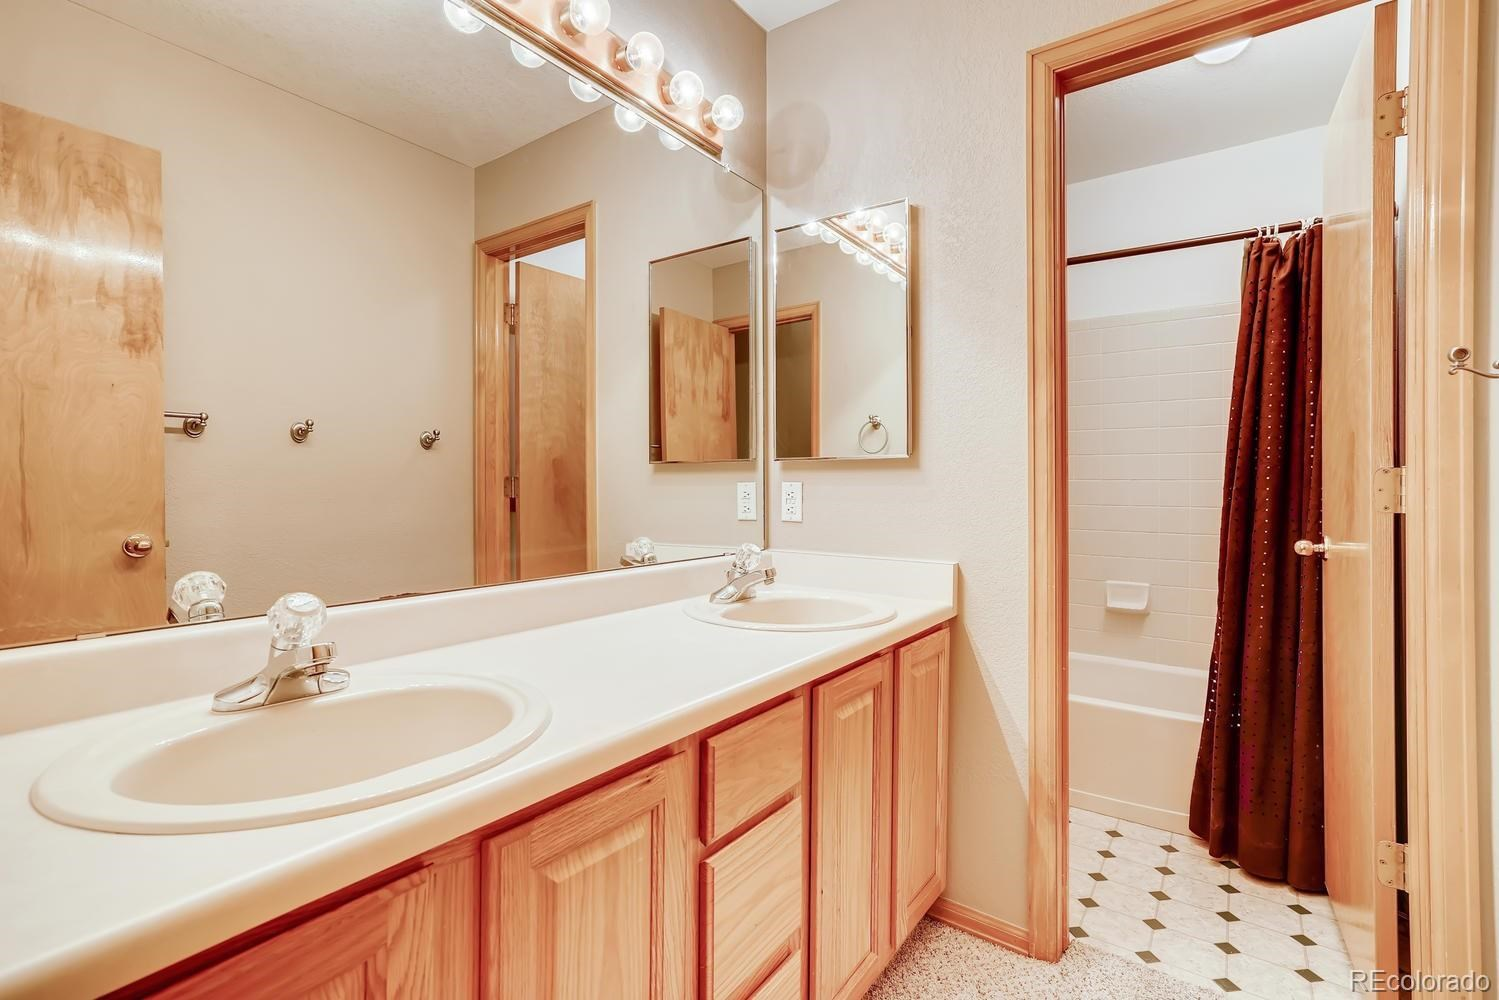 MLS# 6431155 - 22 - 6773 W 98th Circle, Westminster, CO 80021